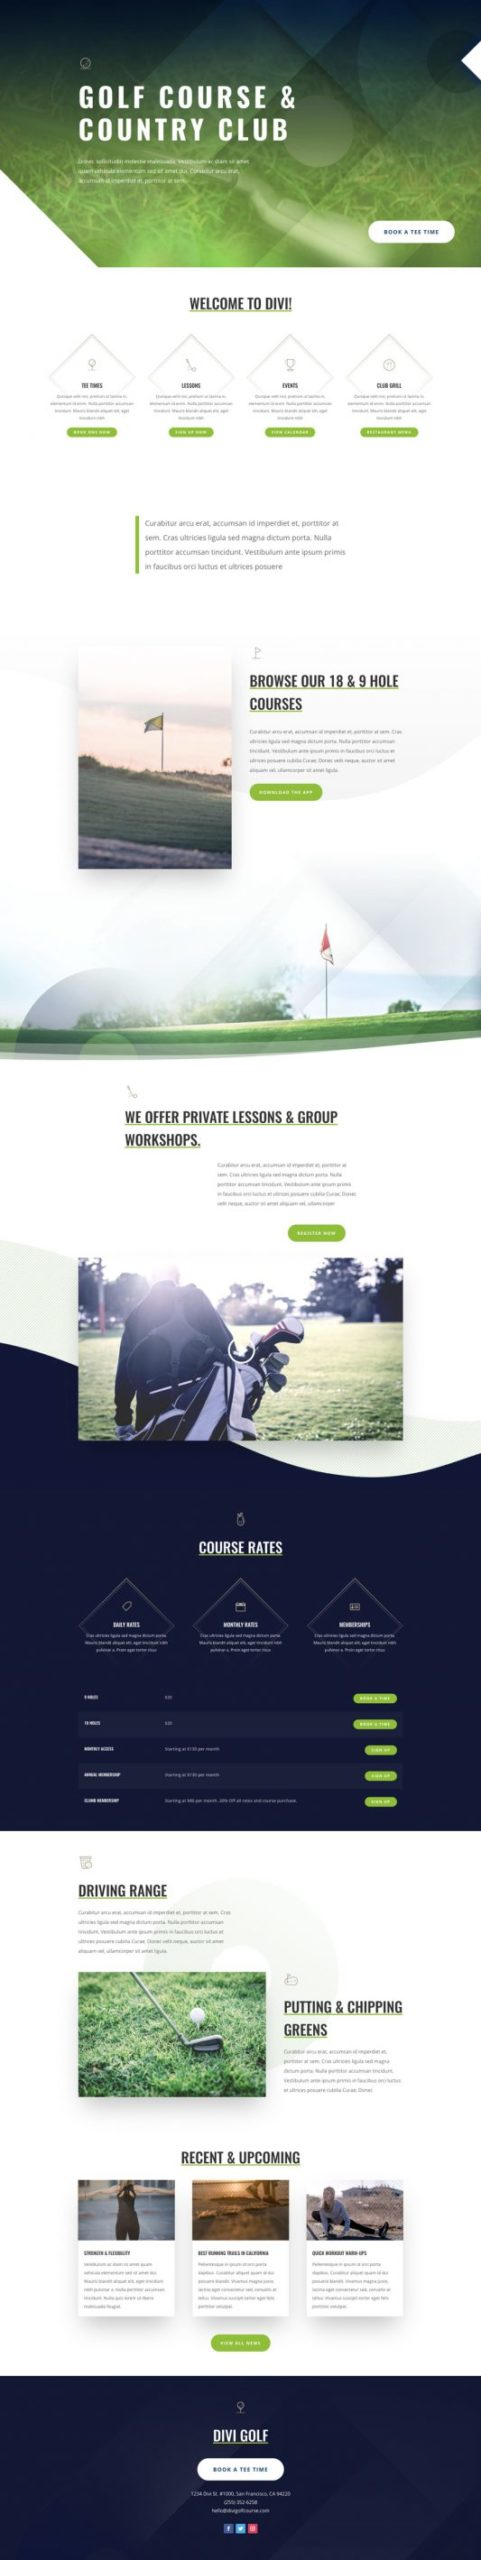 Golf Course Landing Page